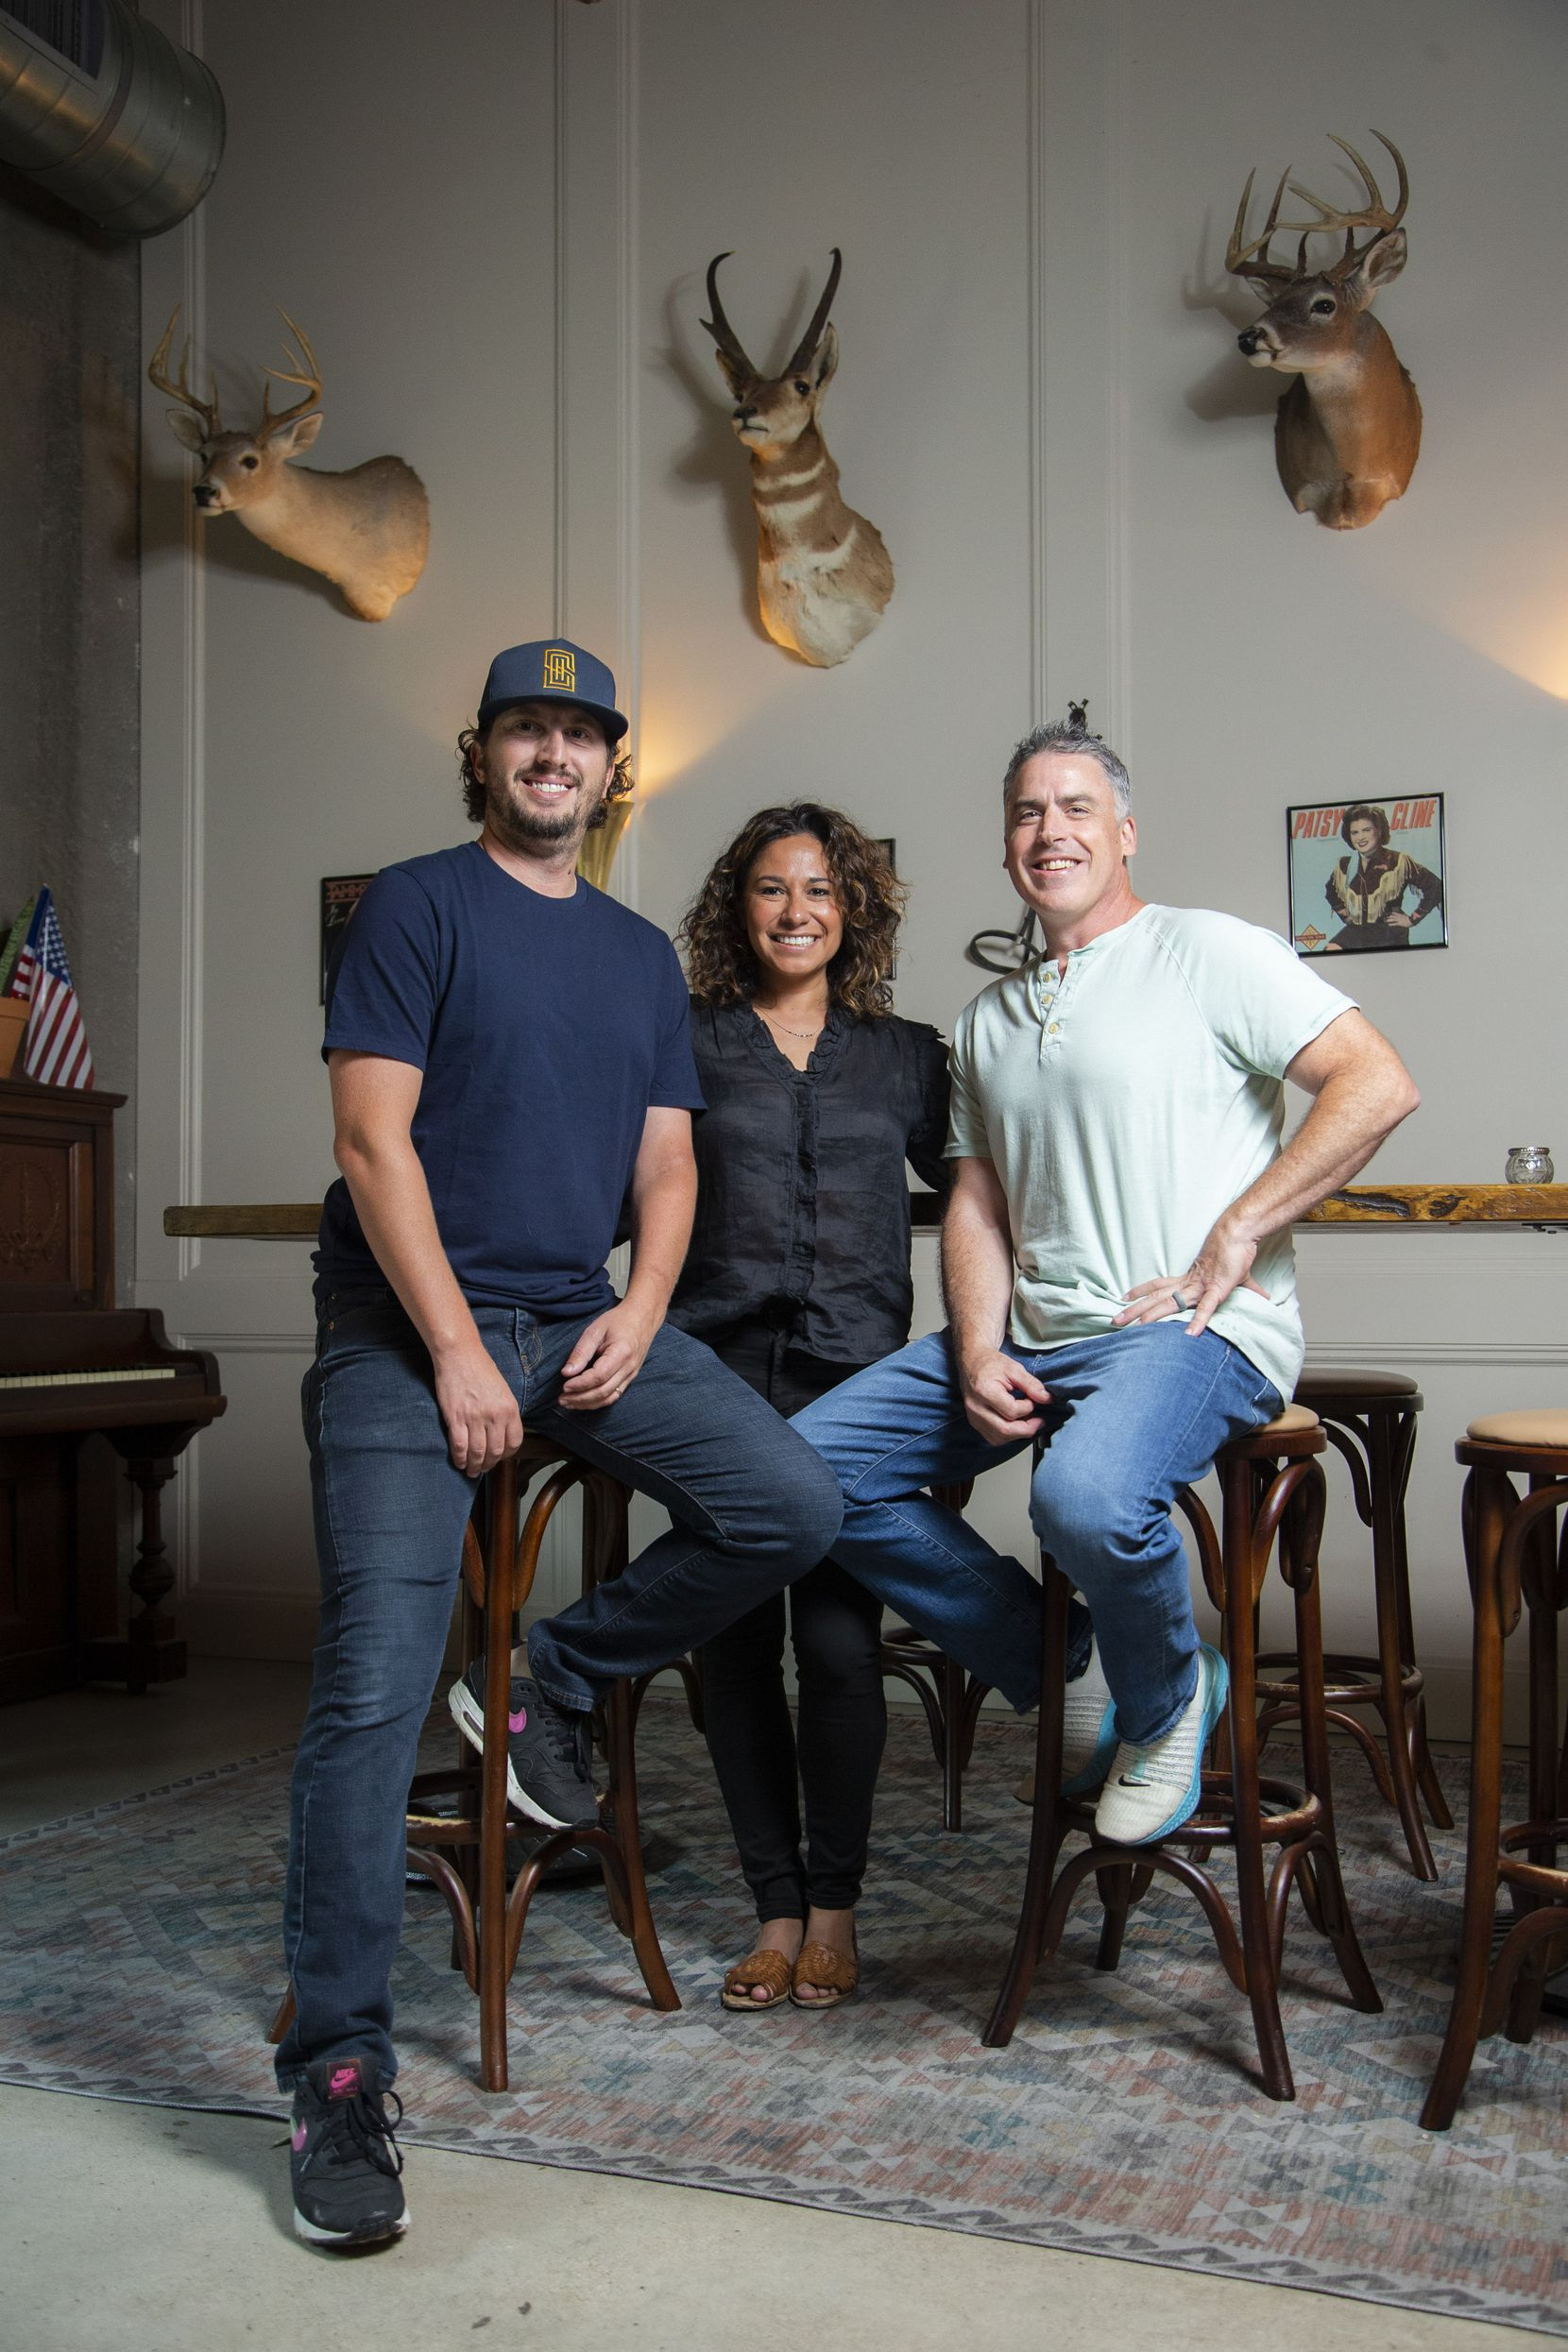 Managing partners Christian Lehrmann, Sarah Castillo and Glen Keely pose for a photo at Side Saddle in the Fort Worth Stockyards.